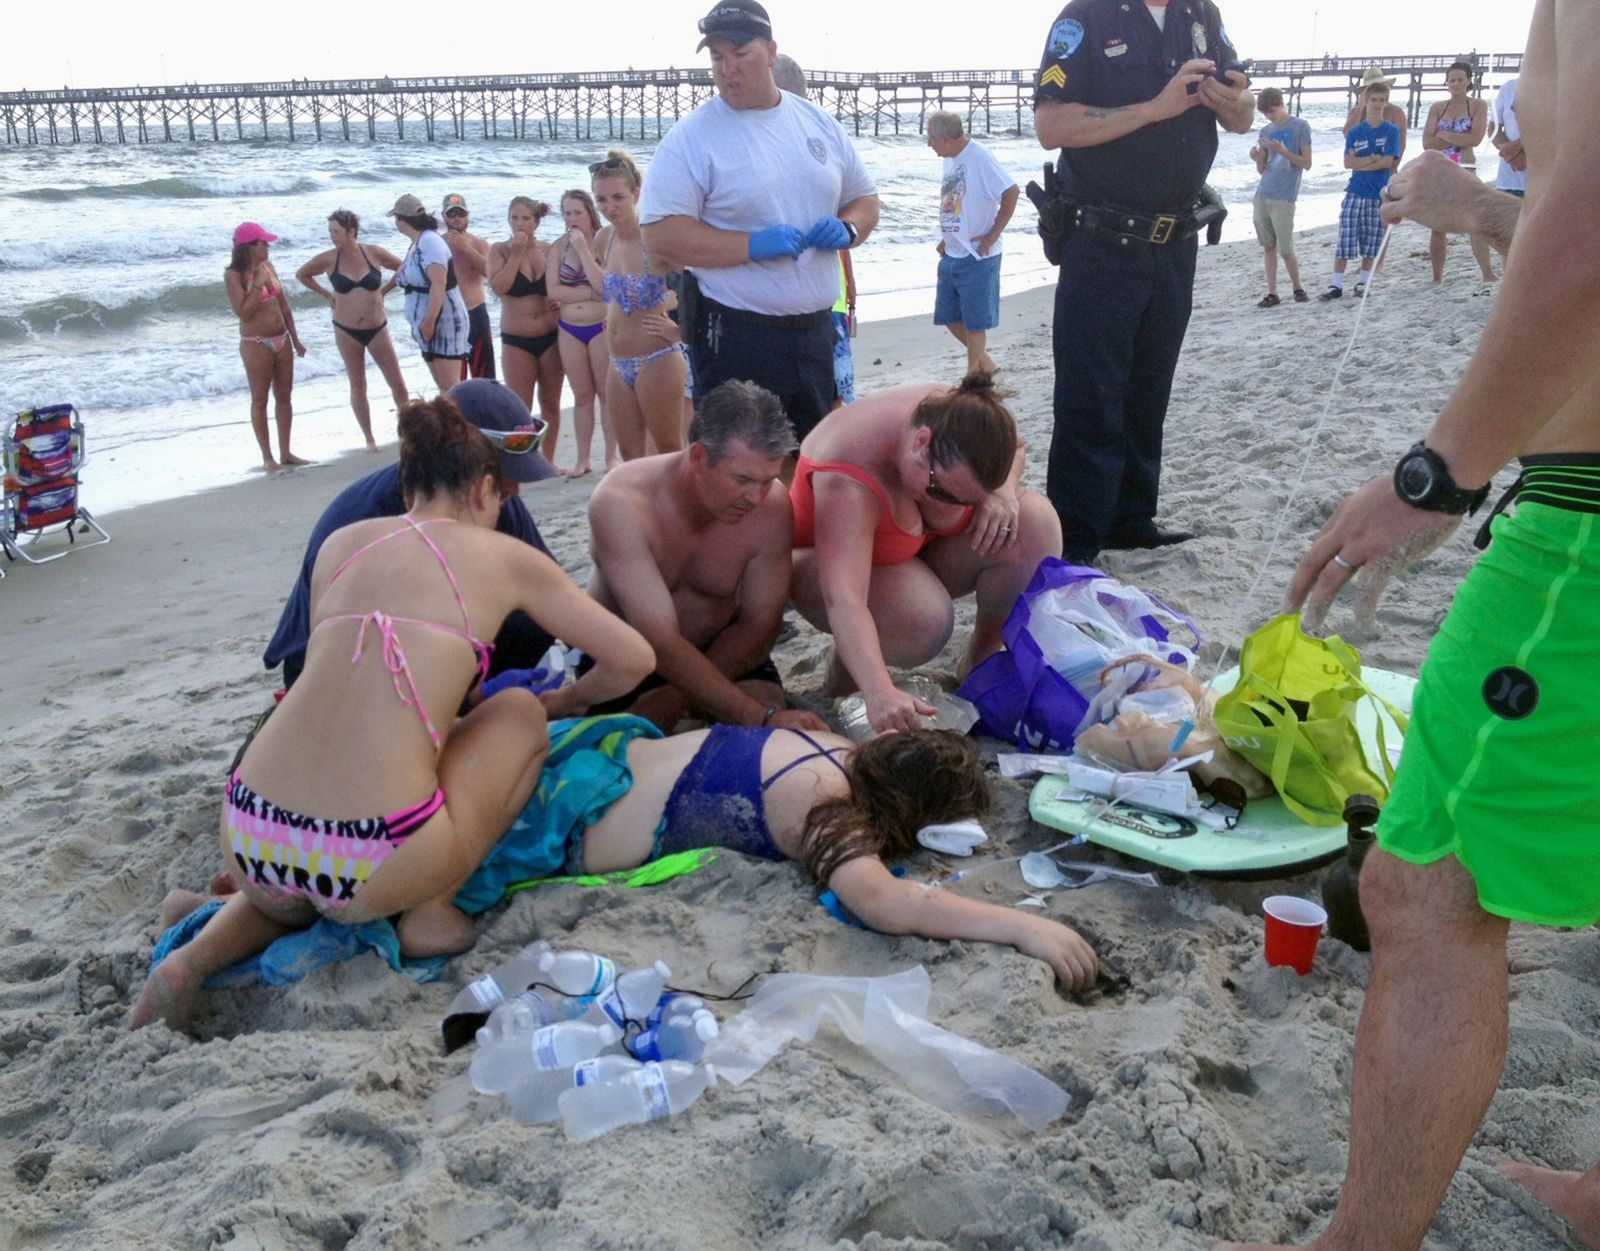 Shark attacks: After recent bites, your questions answered